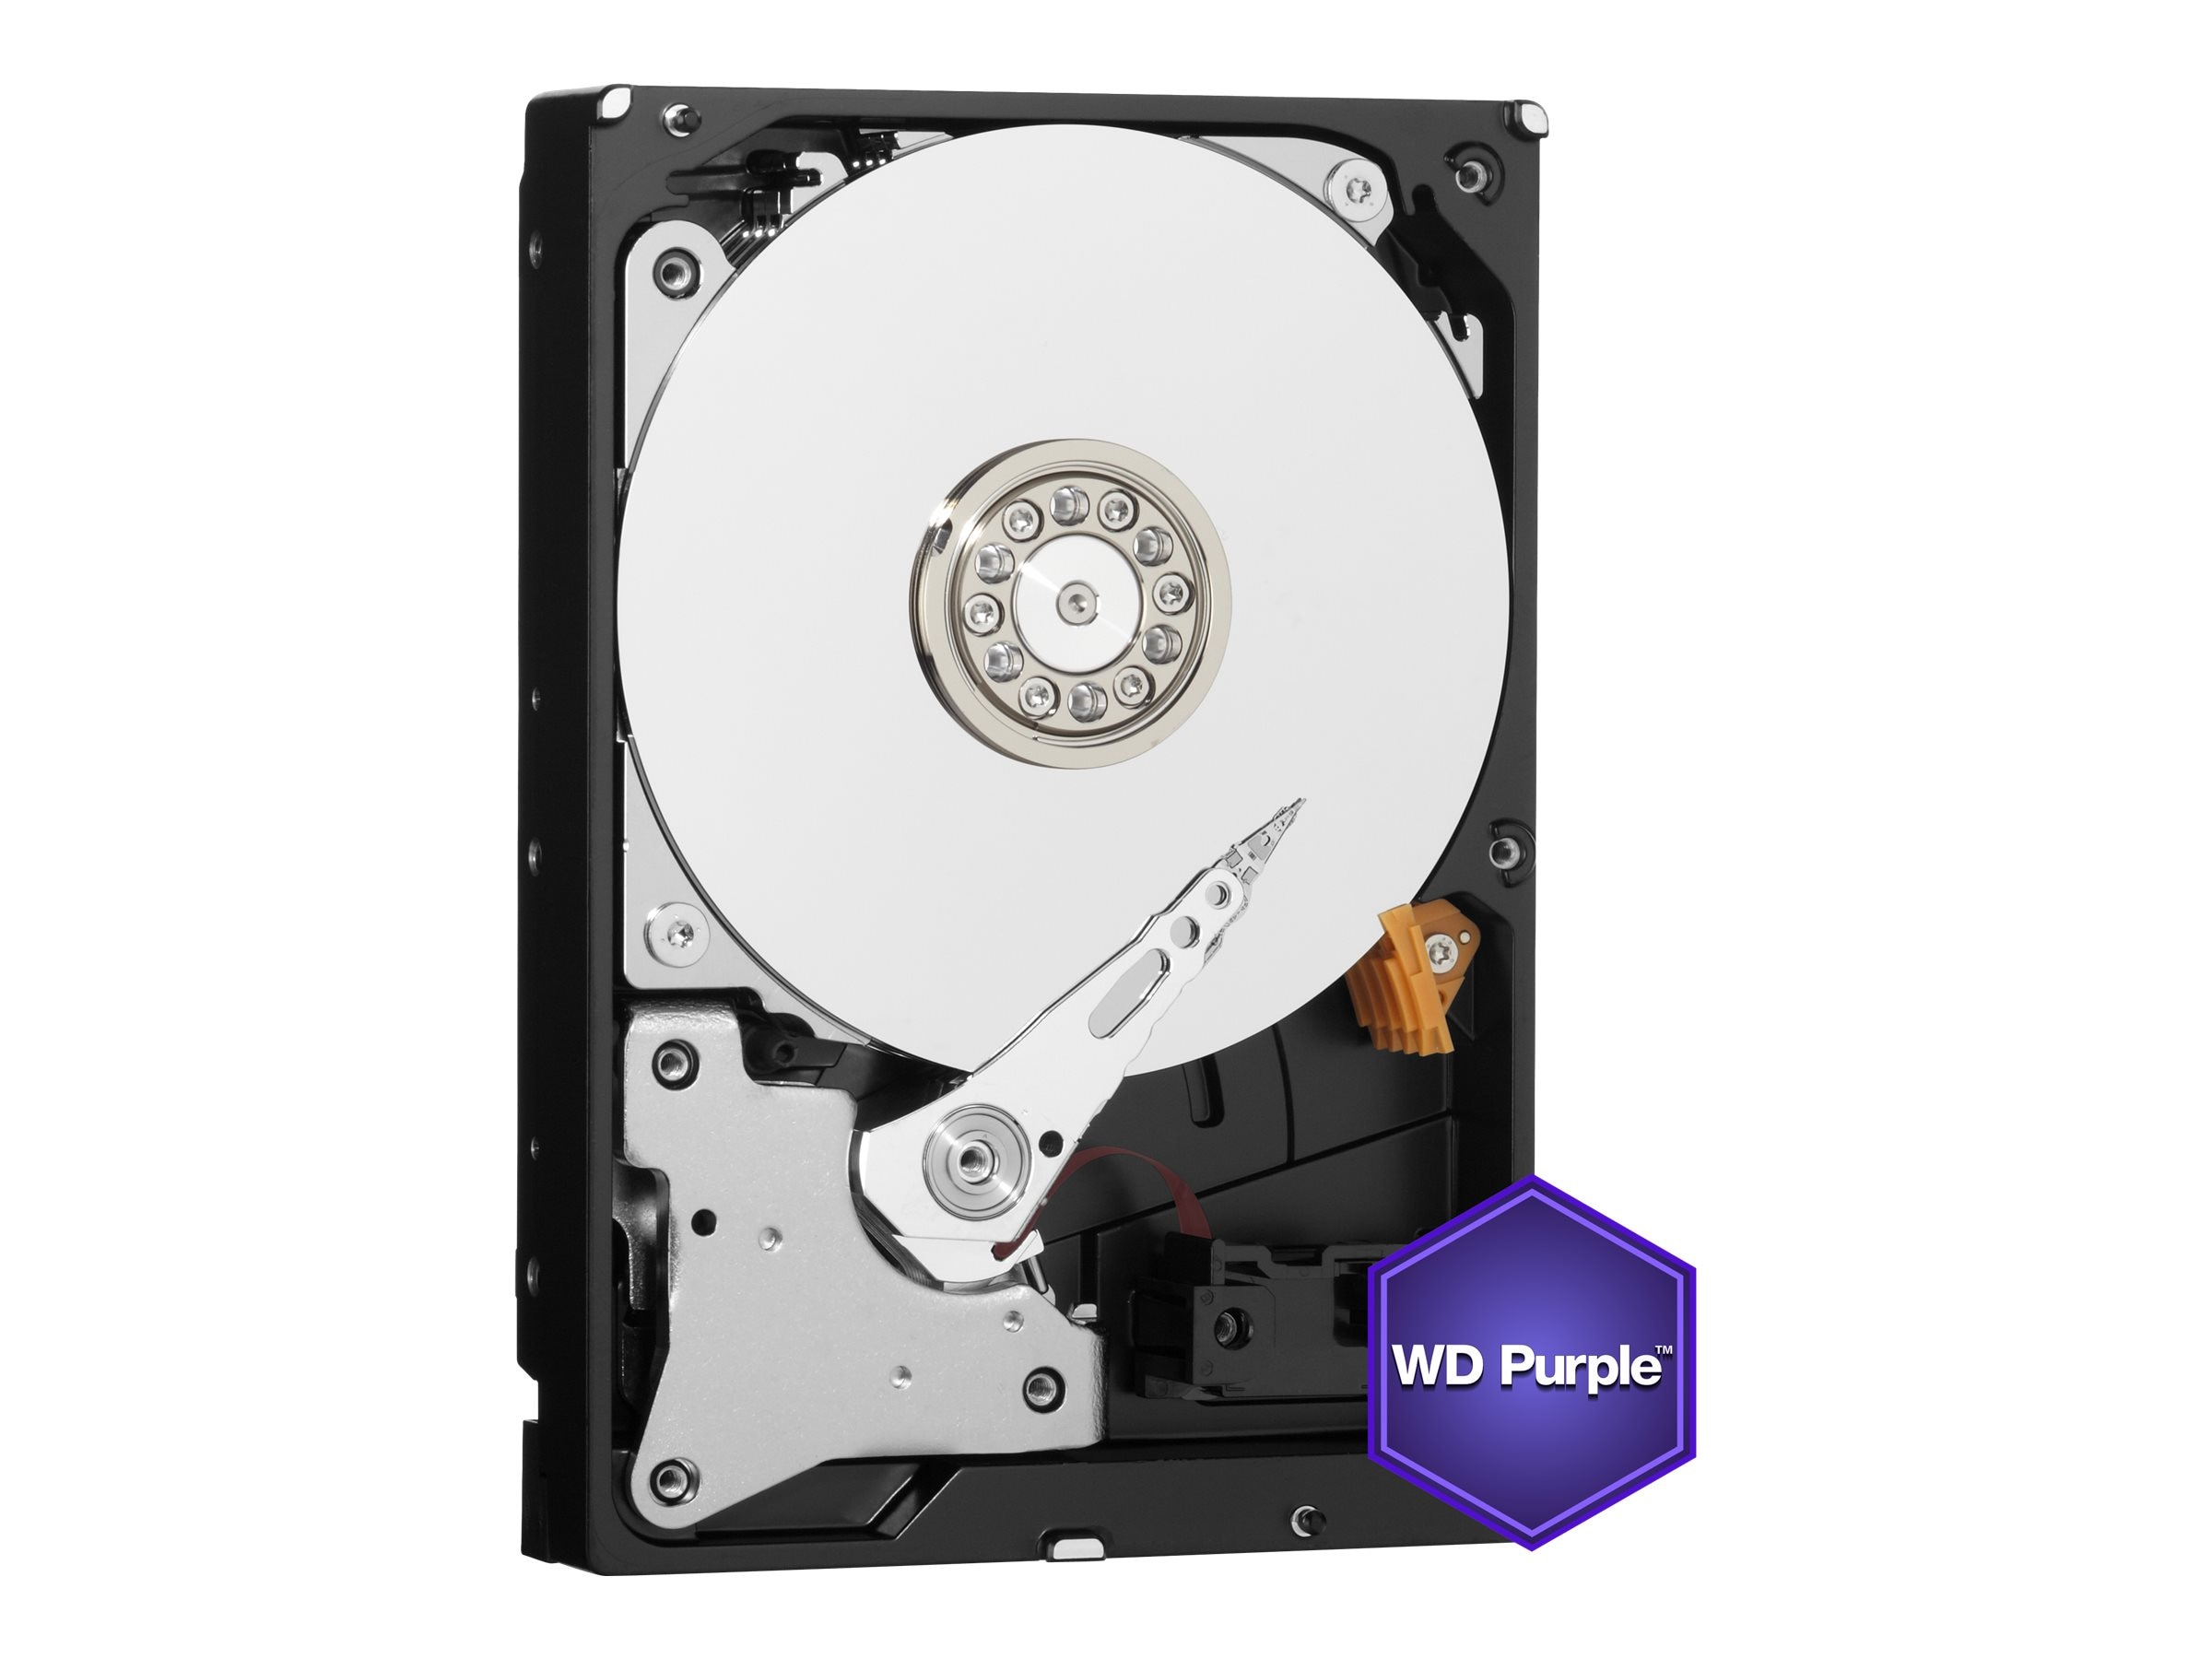 WD 5TB WD Purple SATA 6Gb s 3.5 Internal Hard Drive - 64MB Cache, WD50PURX